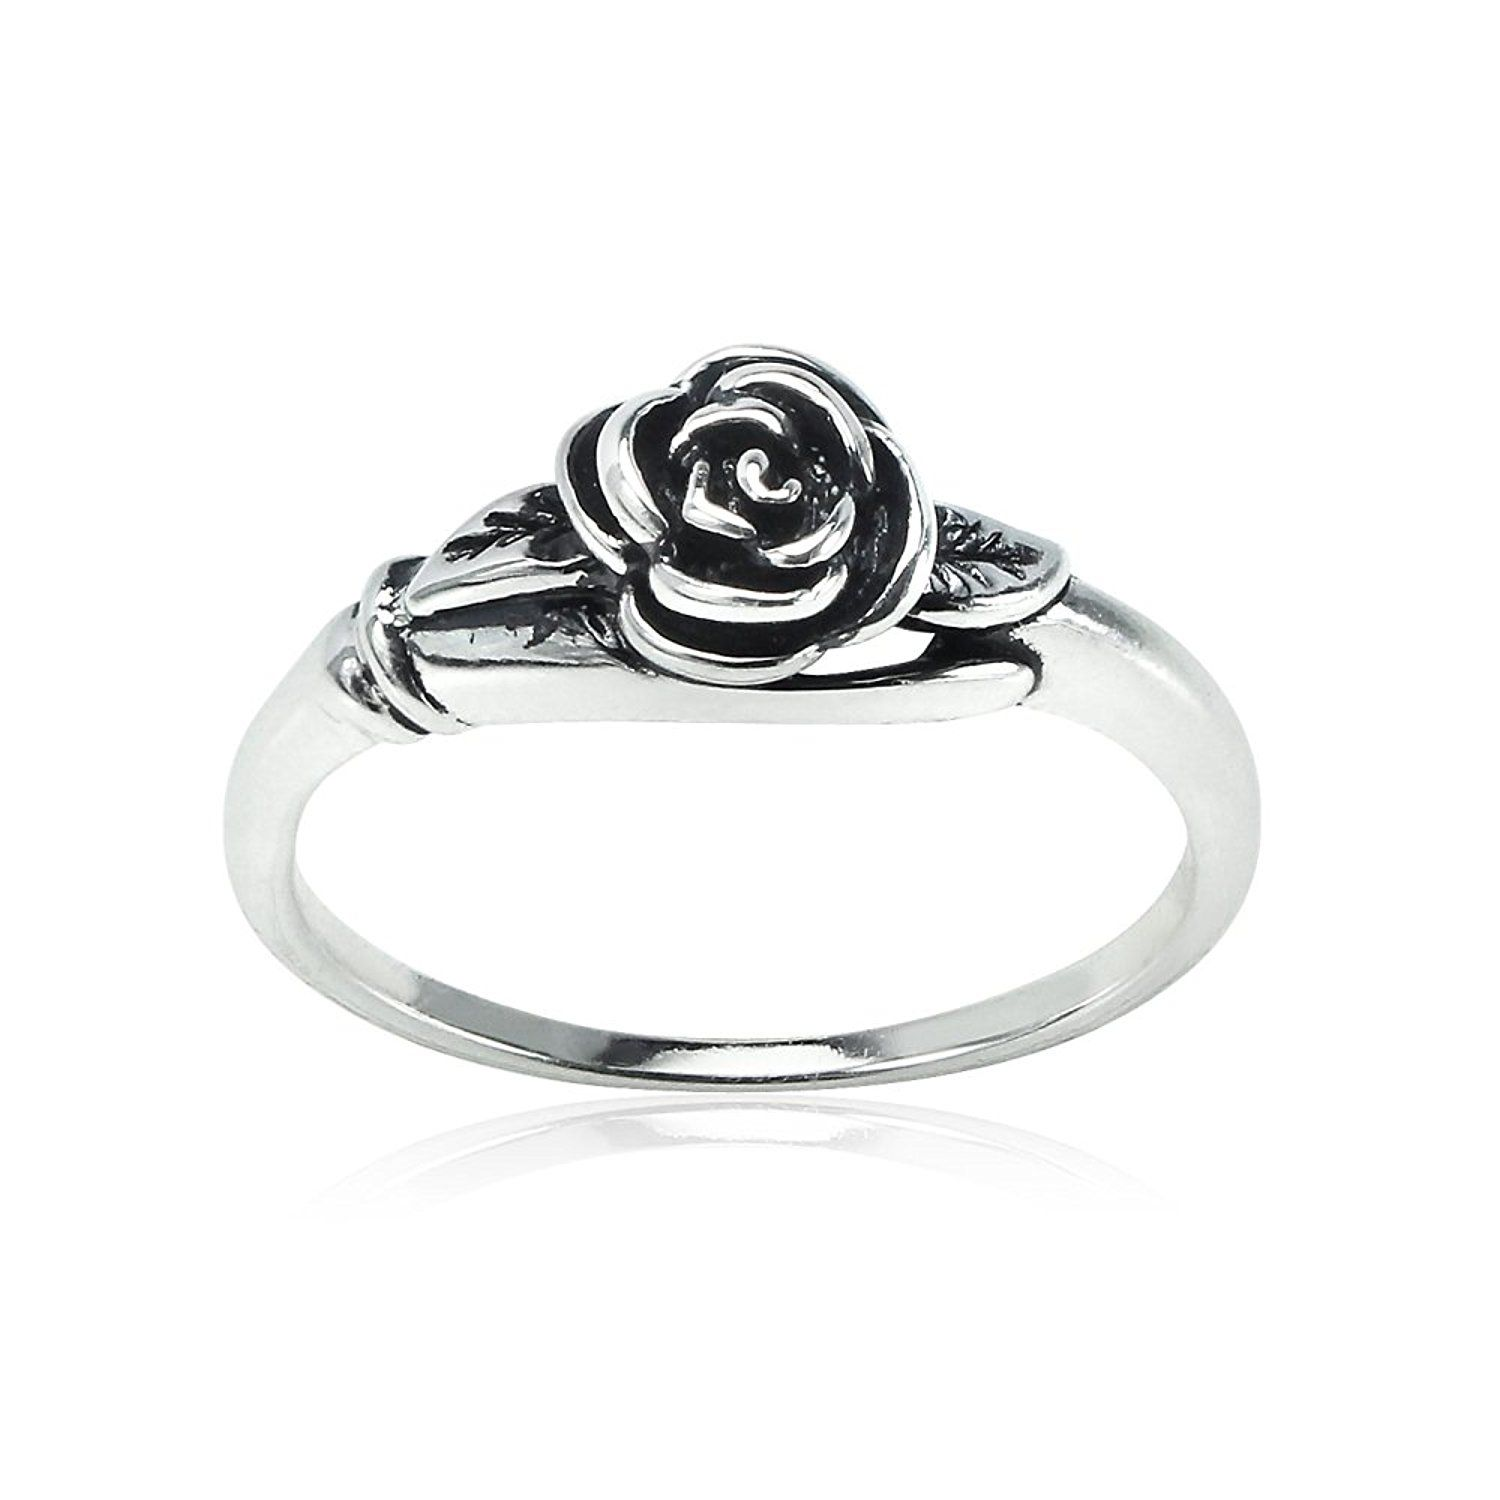 8032aad71 Amazon.com: Sterling Silver Oxidized Flower Rose Ring, Size 9: Jewelry